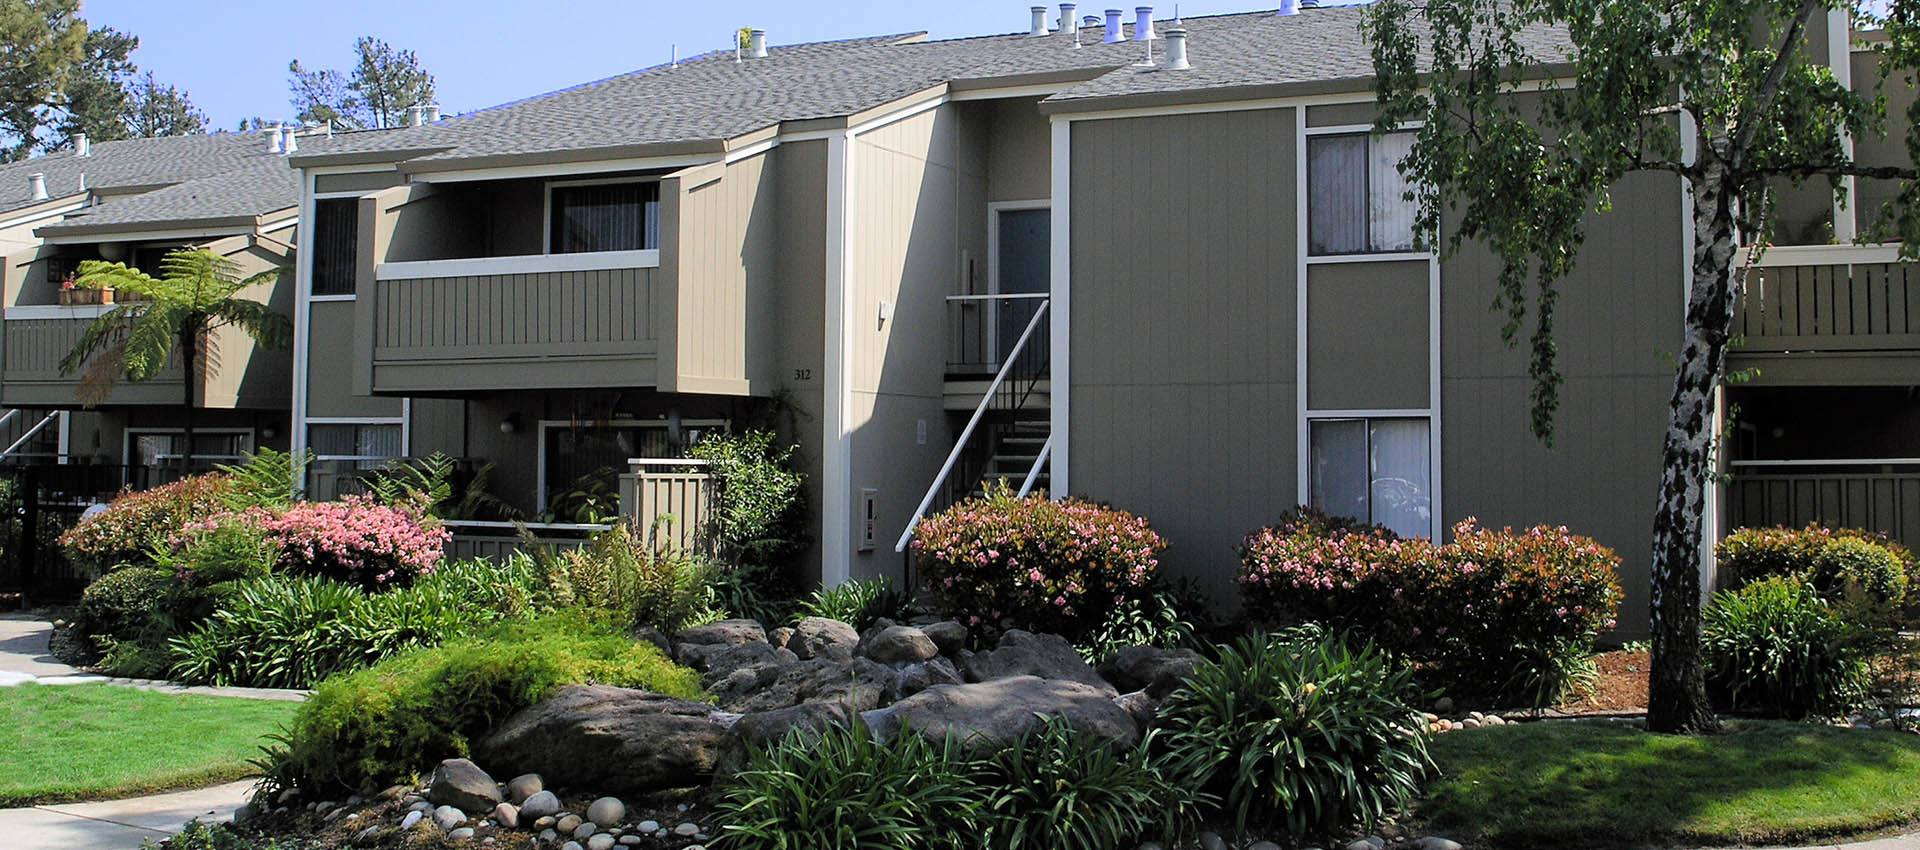 Landscaping at apartments in Alameda, CA